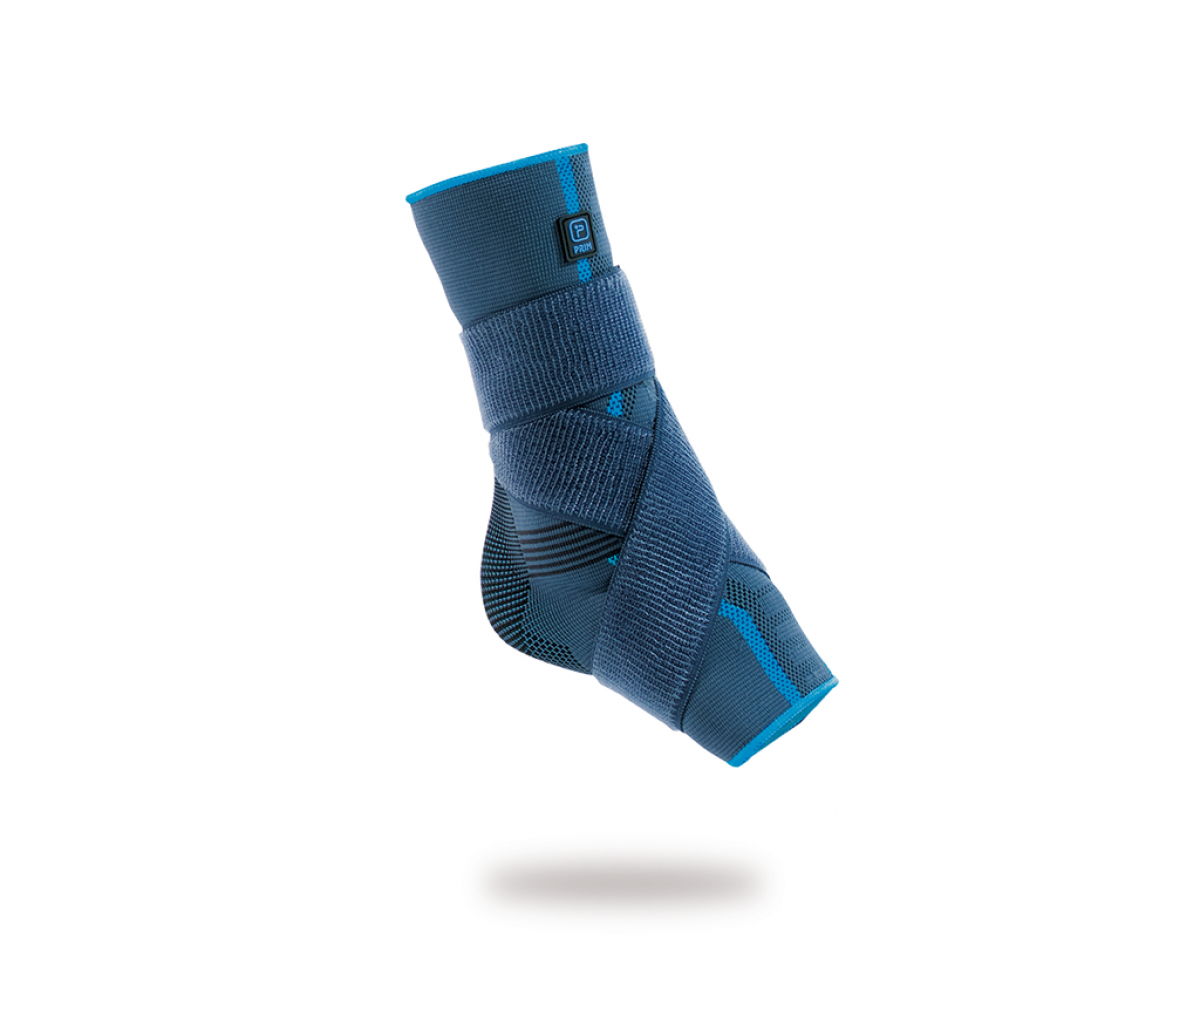 AQTIVO ANKLE BRACE WITH FIGURE OF 8 STRAP - M P706